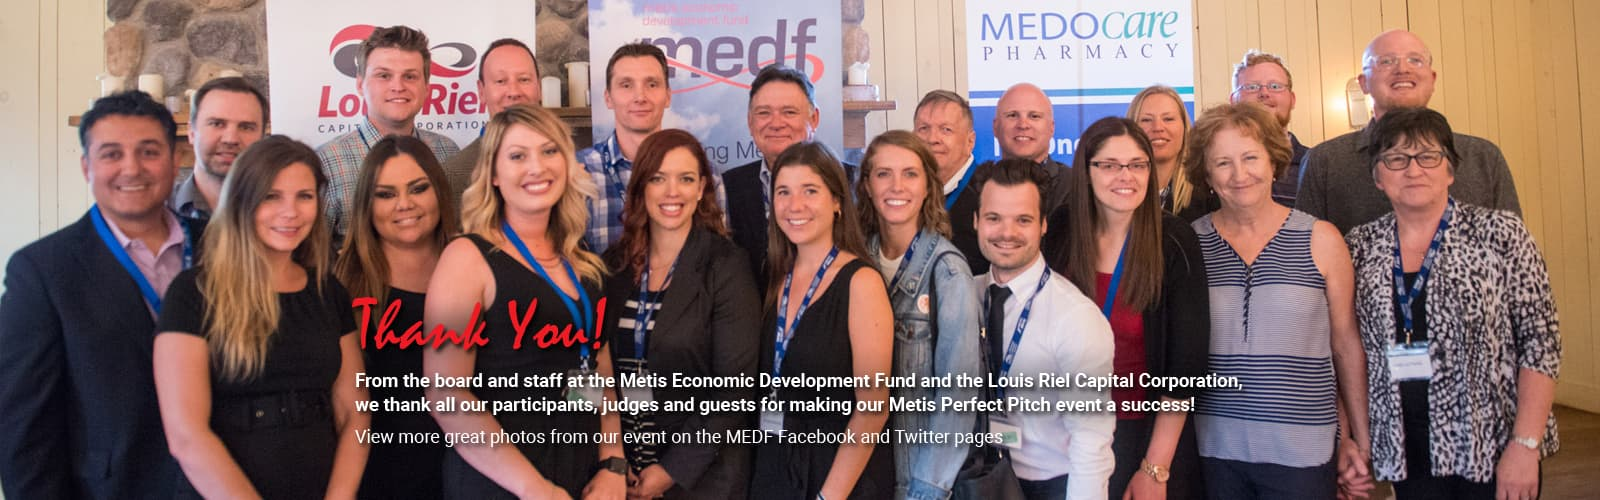 Metis Perfect Pitch - Thank you!